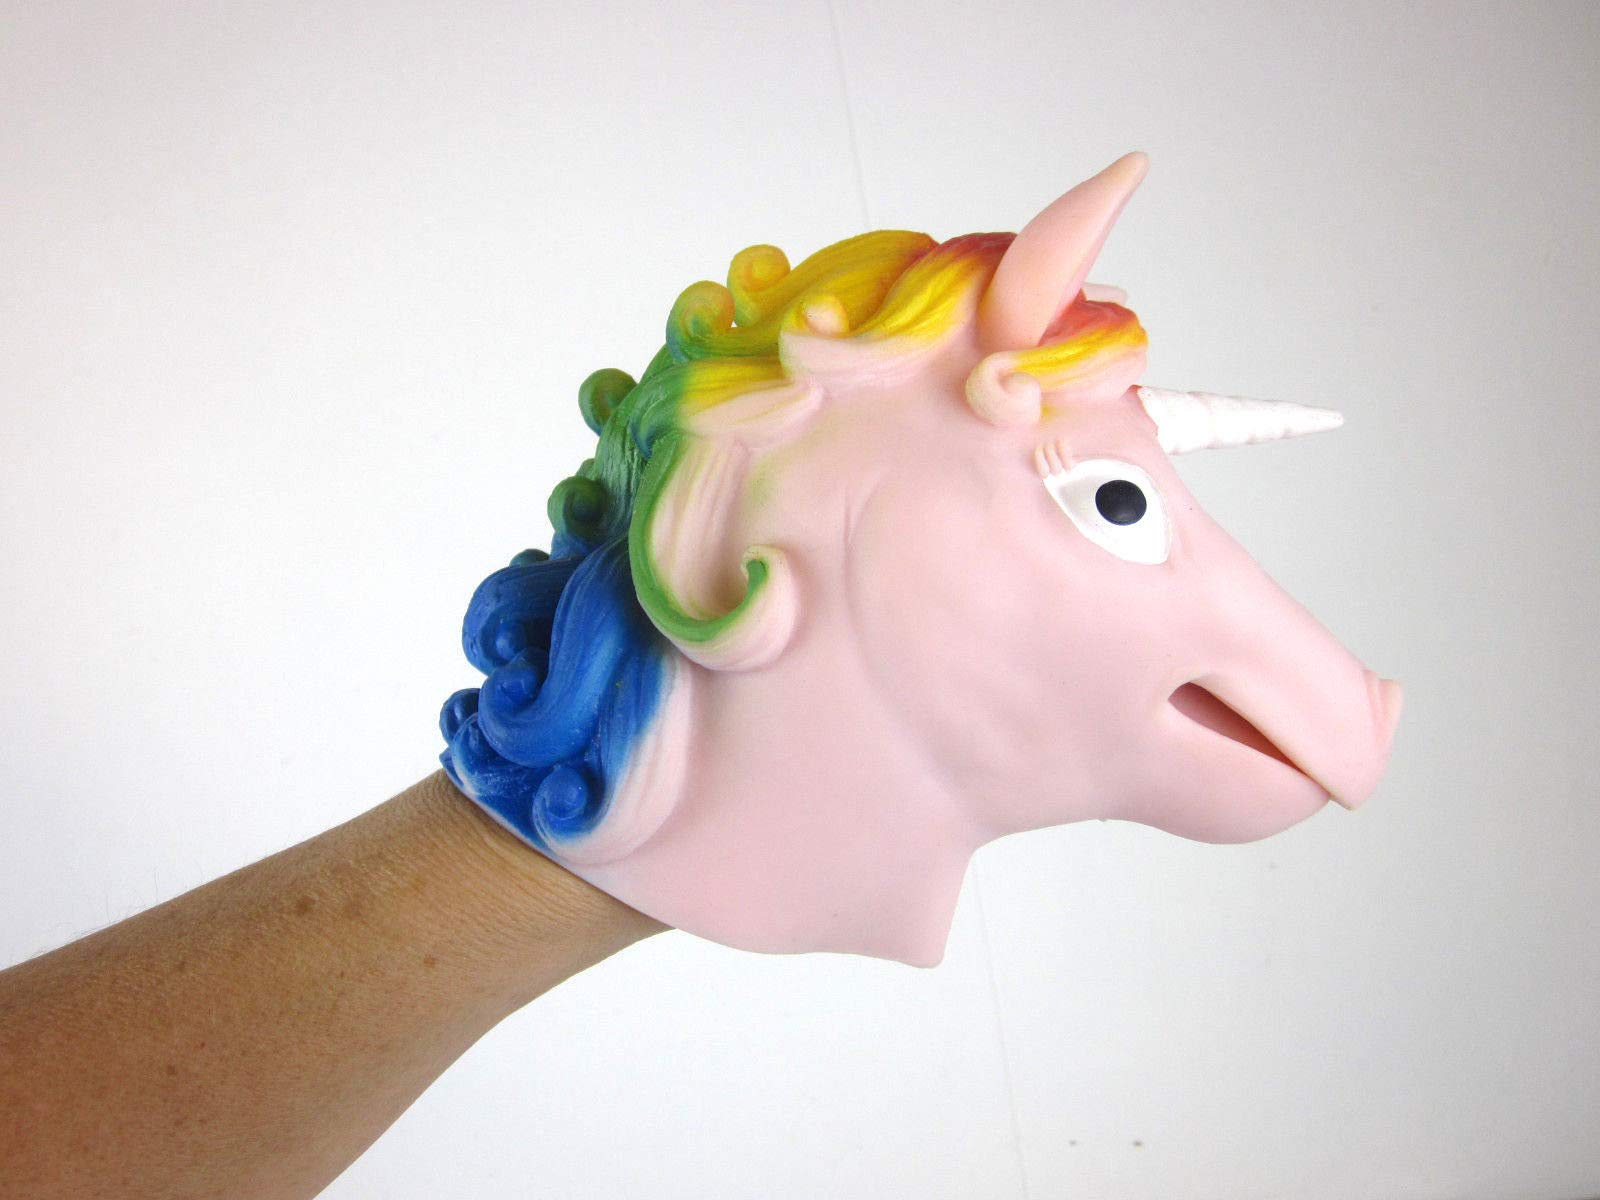 Big Game Toys~Unicorn Hand Puppet Rainbow Mane Stretchy Rubber Schylling Pink or Purple 6